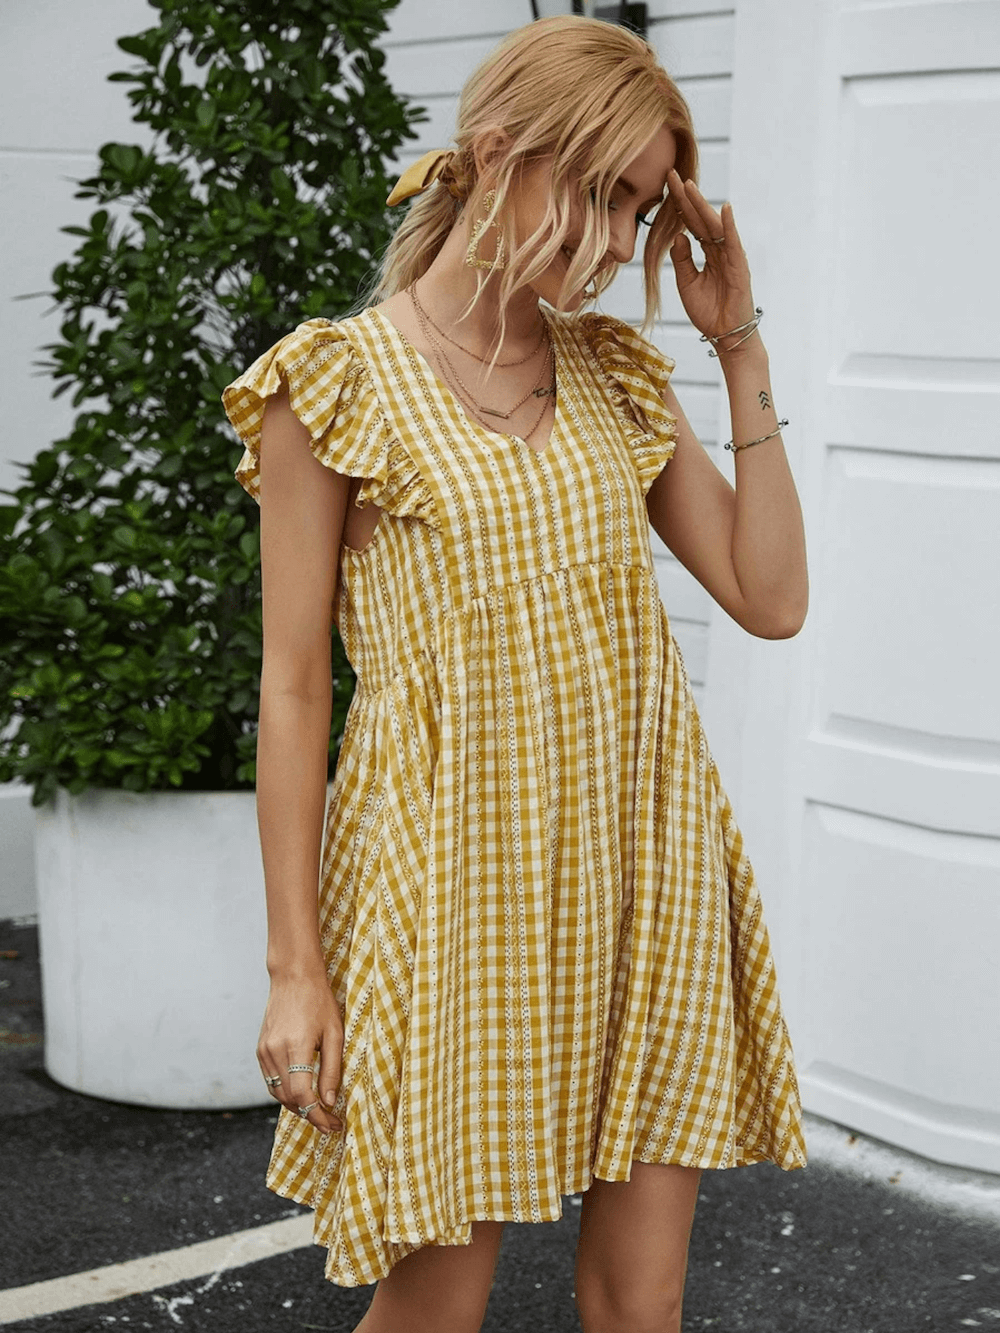 Summer Outfits Sundresses Beach Casual Yellow Gingham Striped Dress Shein 2